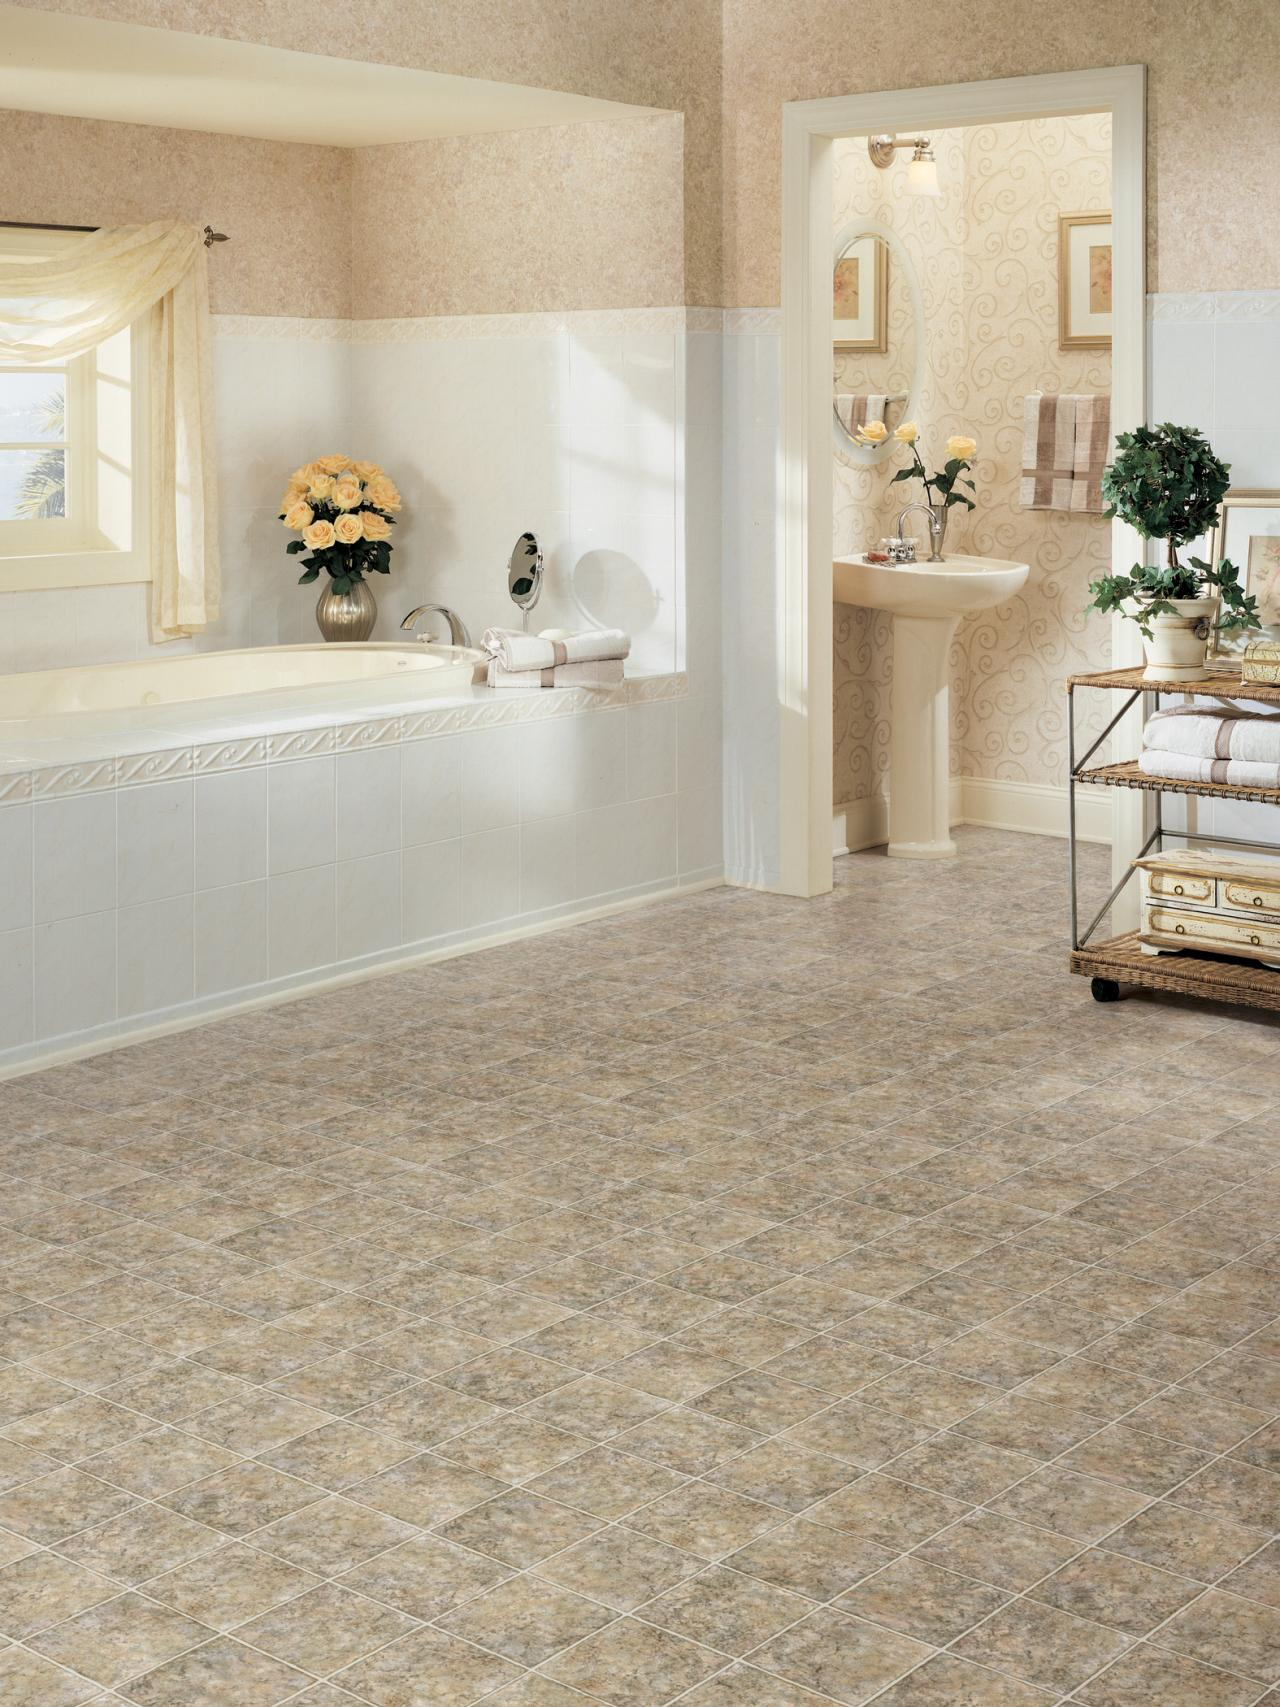 31 stunning pictures and ideas of vinyl flooring bathroom ...